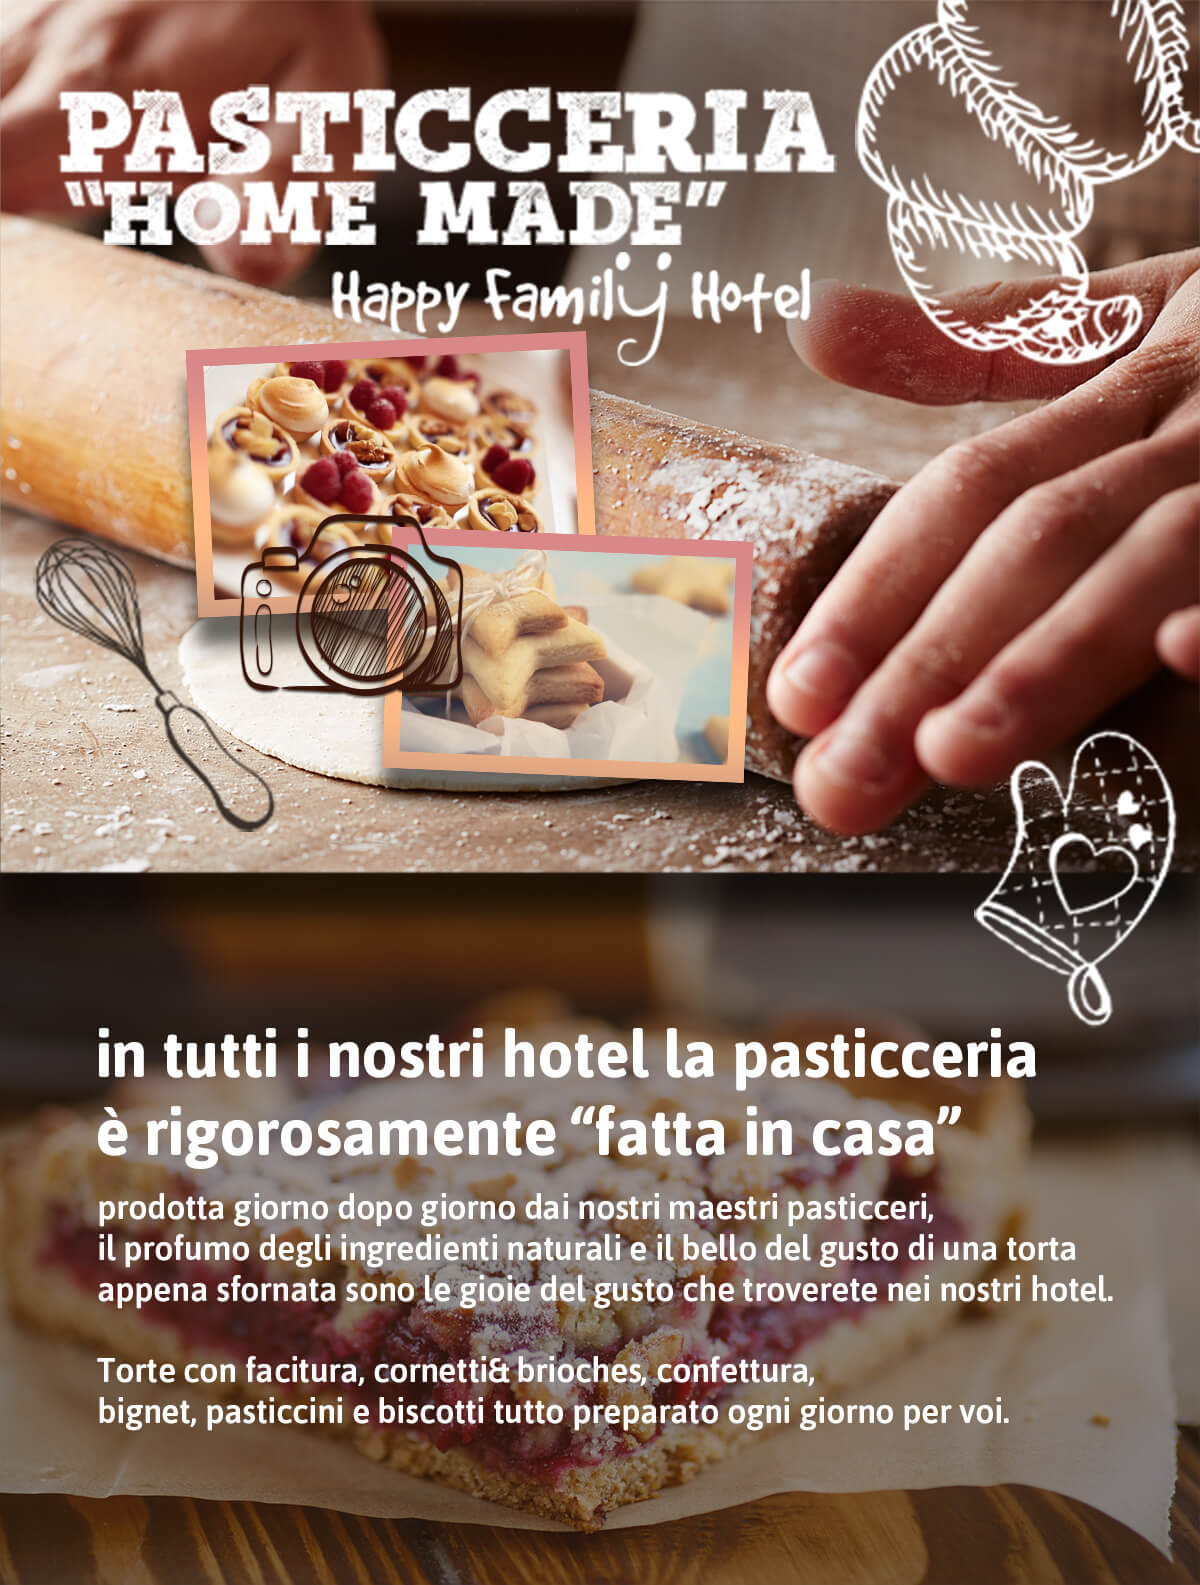 Happy Family Hotel | Pasticceria Home Made